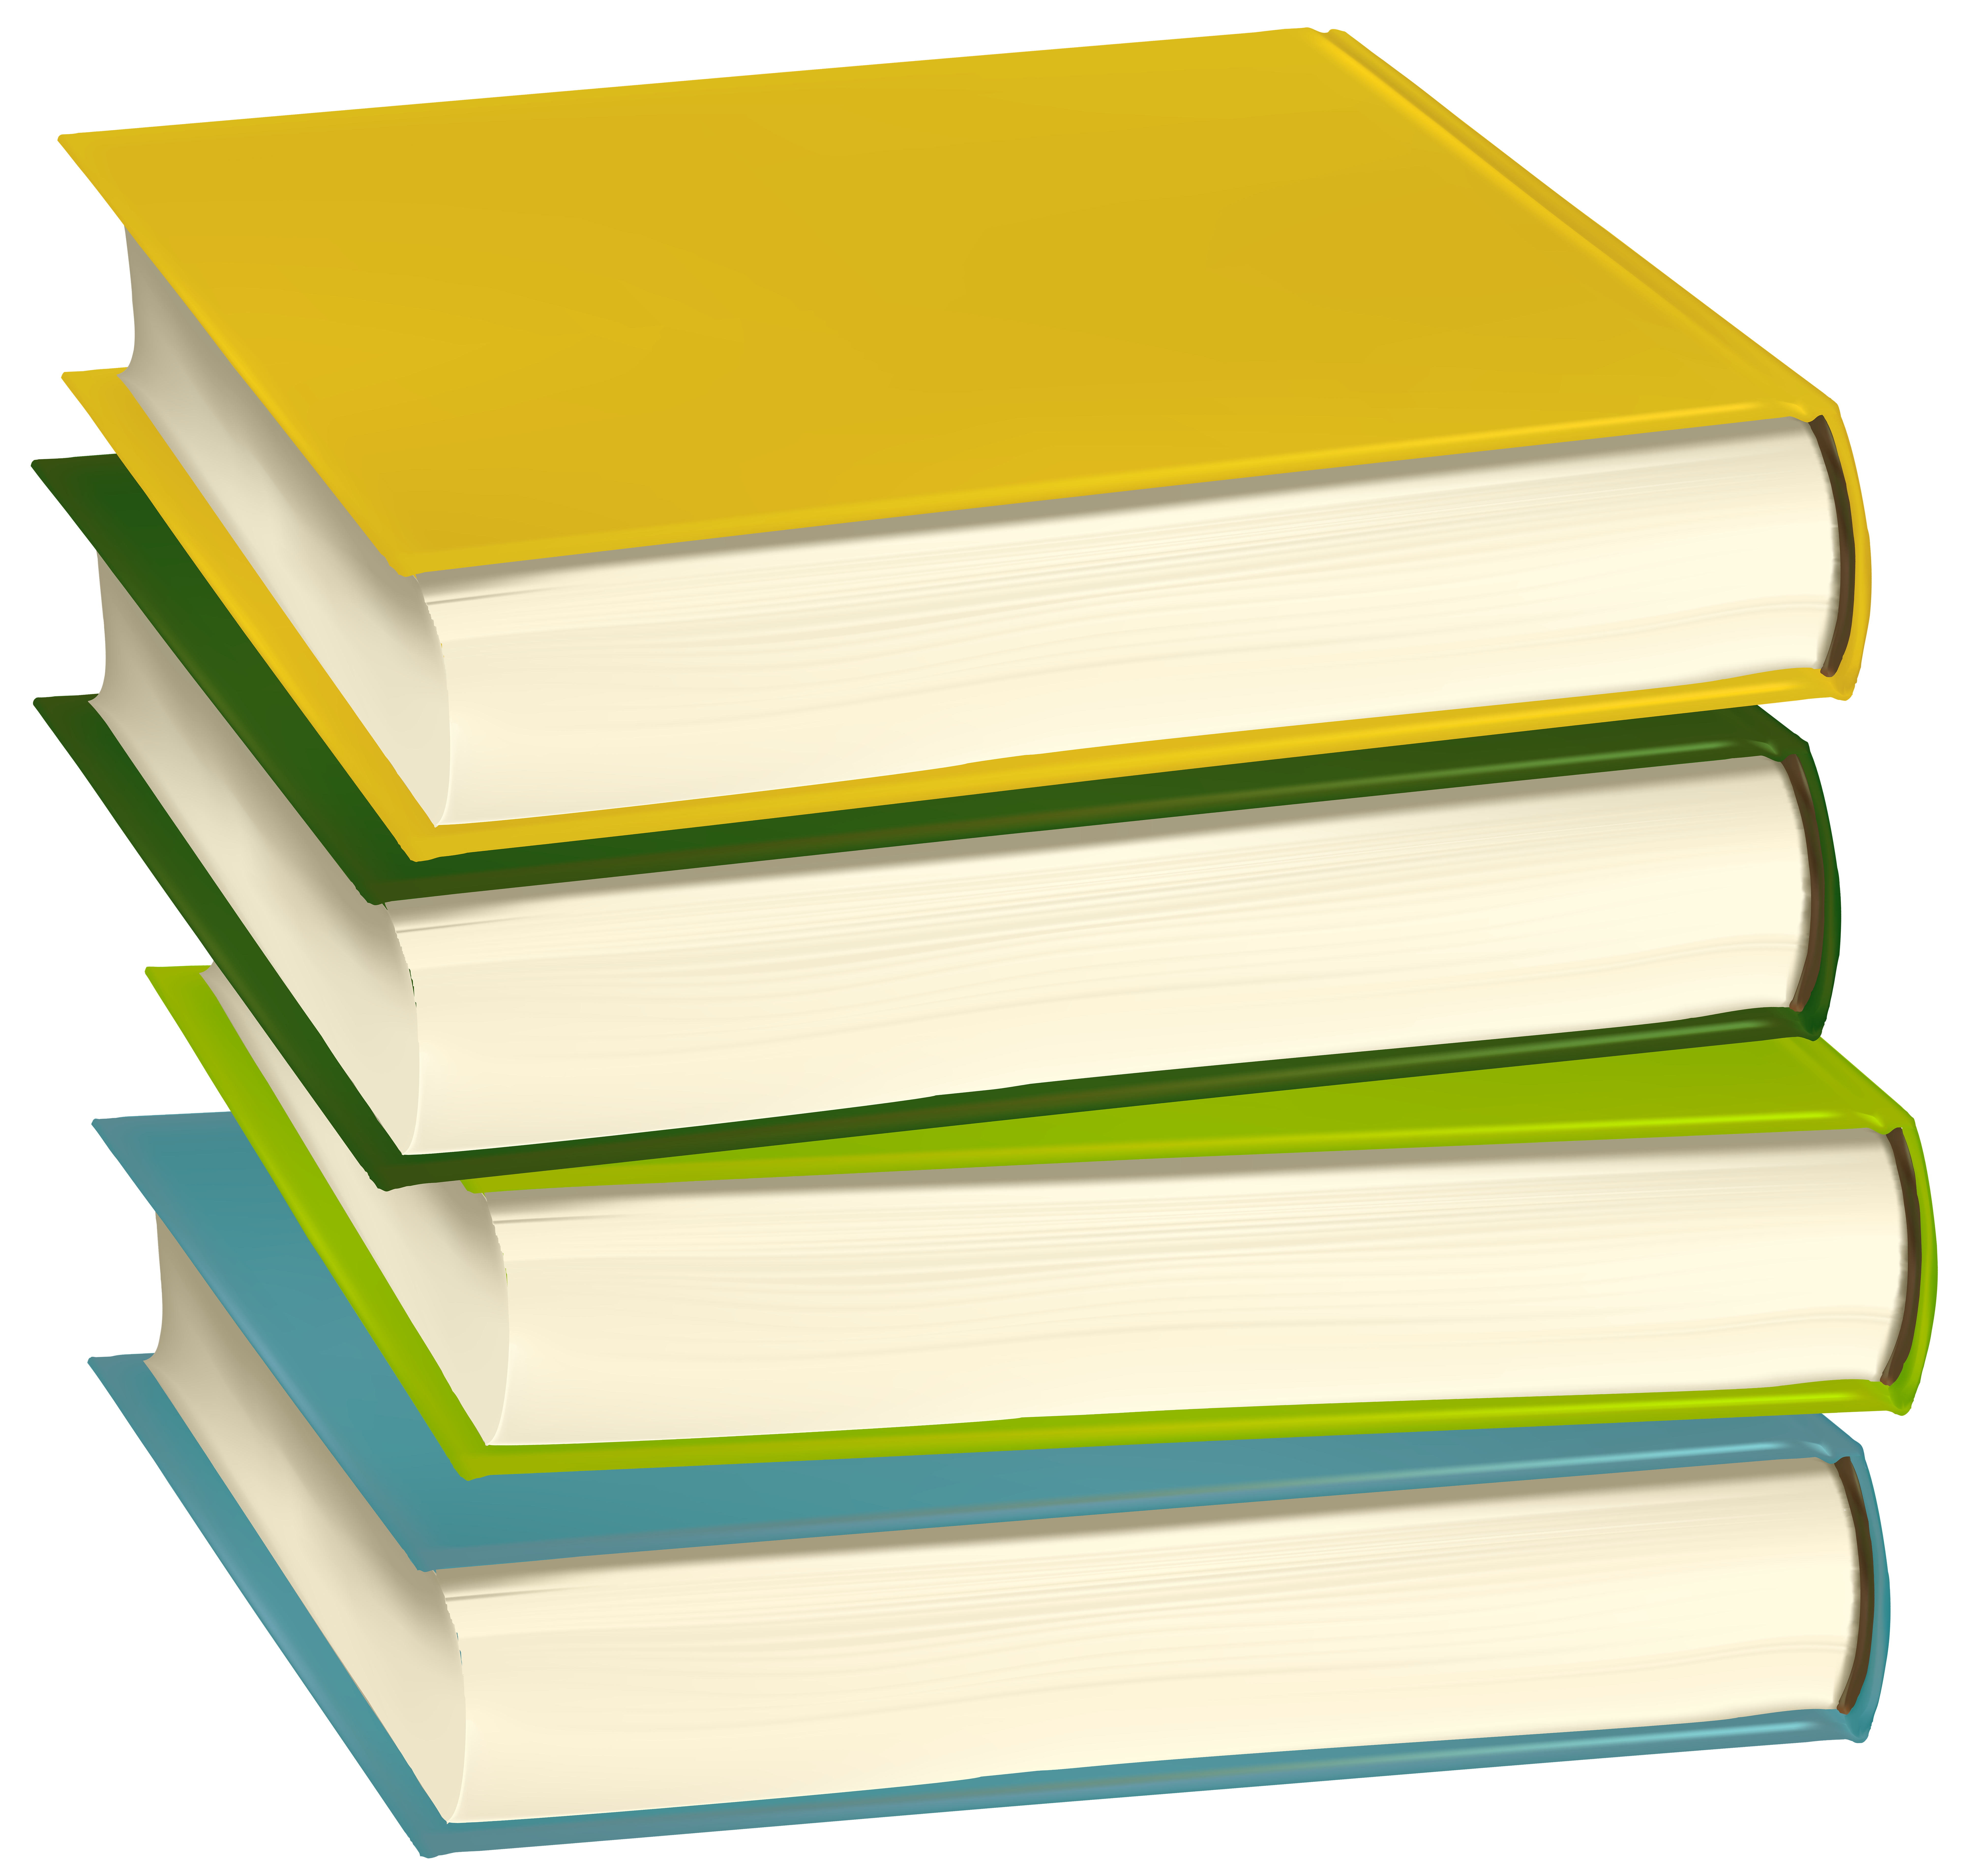 Clipart paper paper pile. Of books png clip